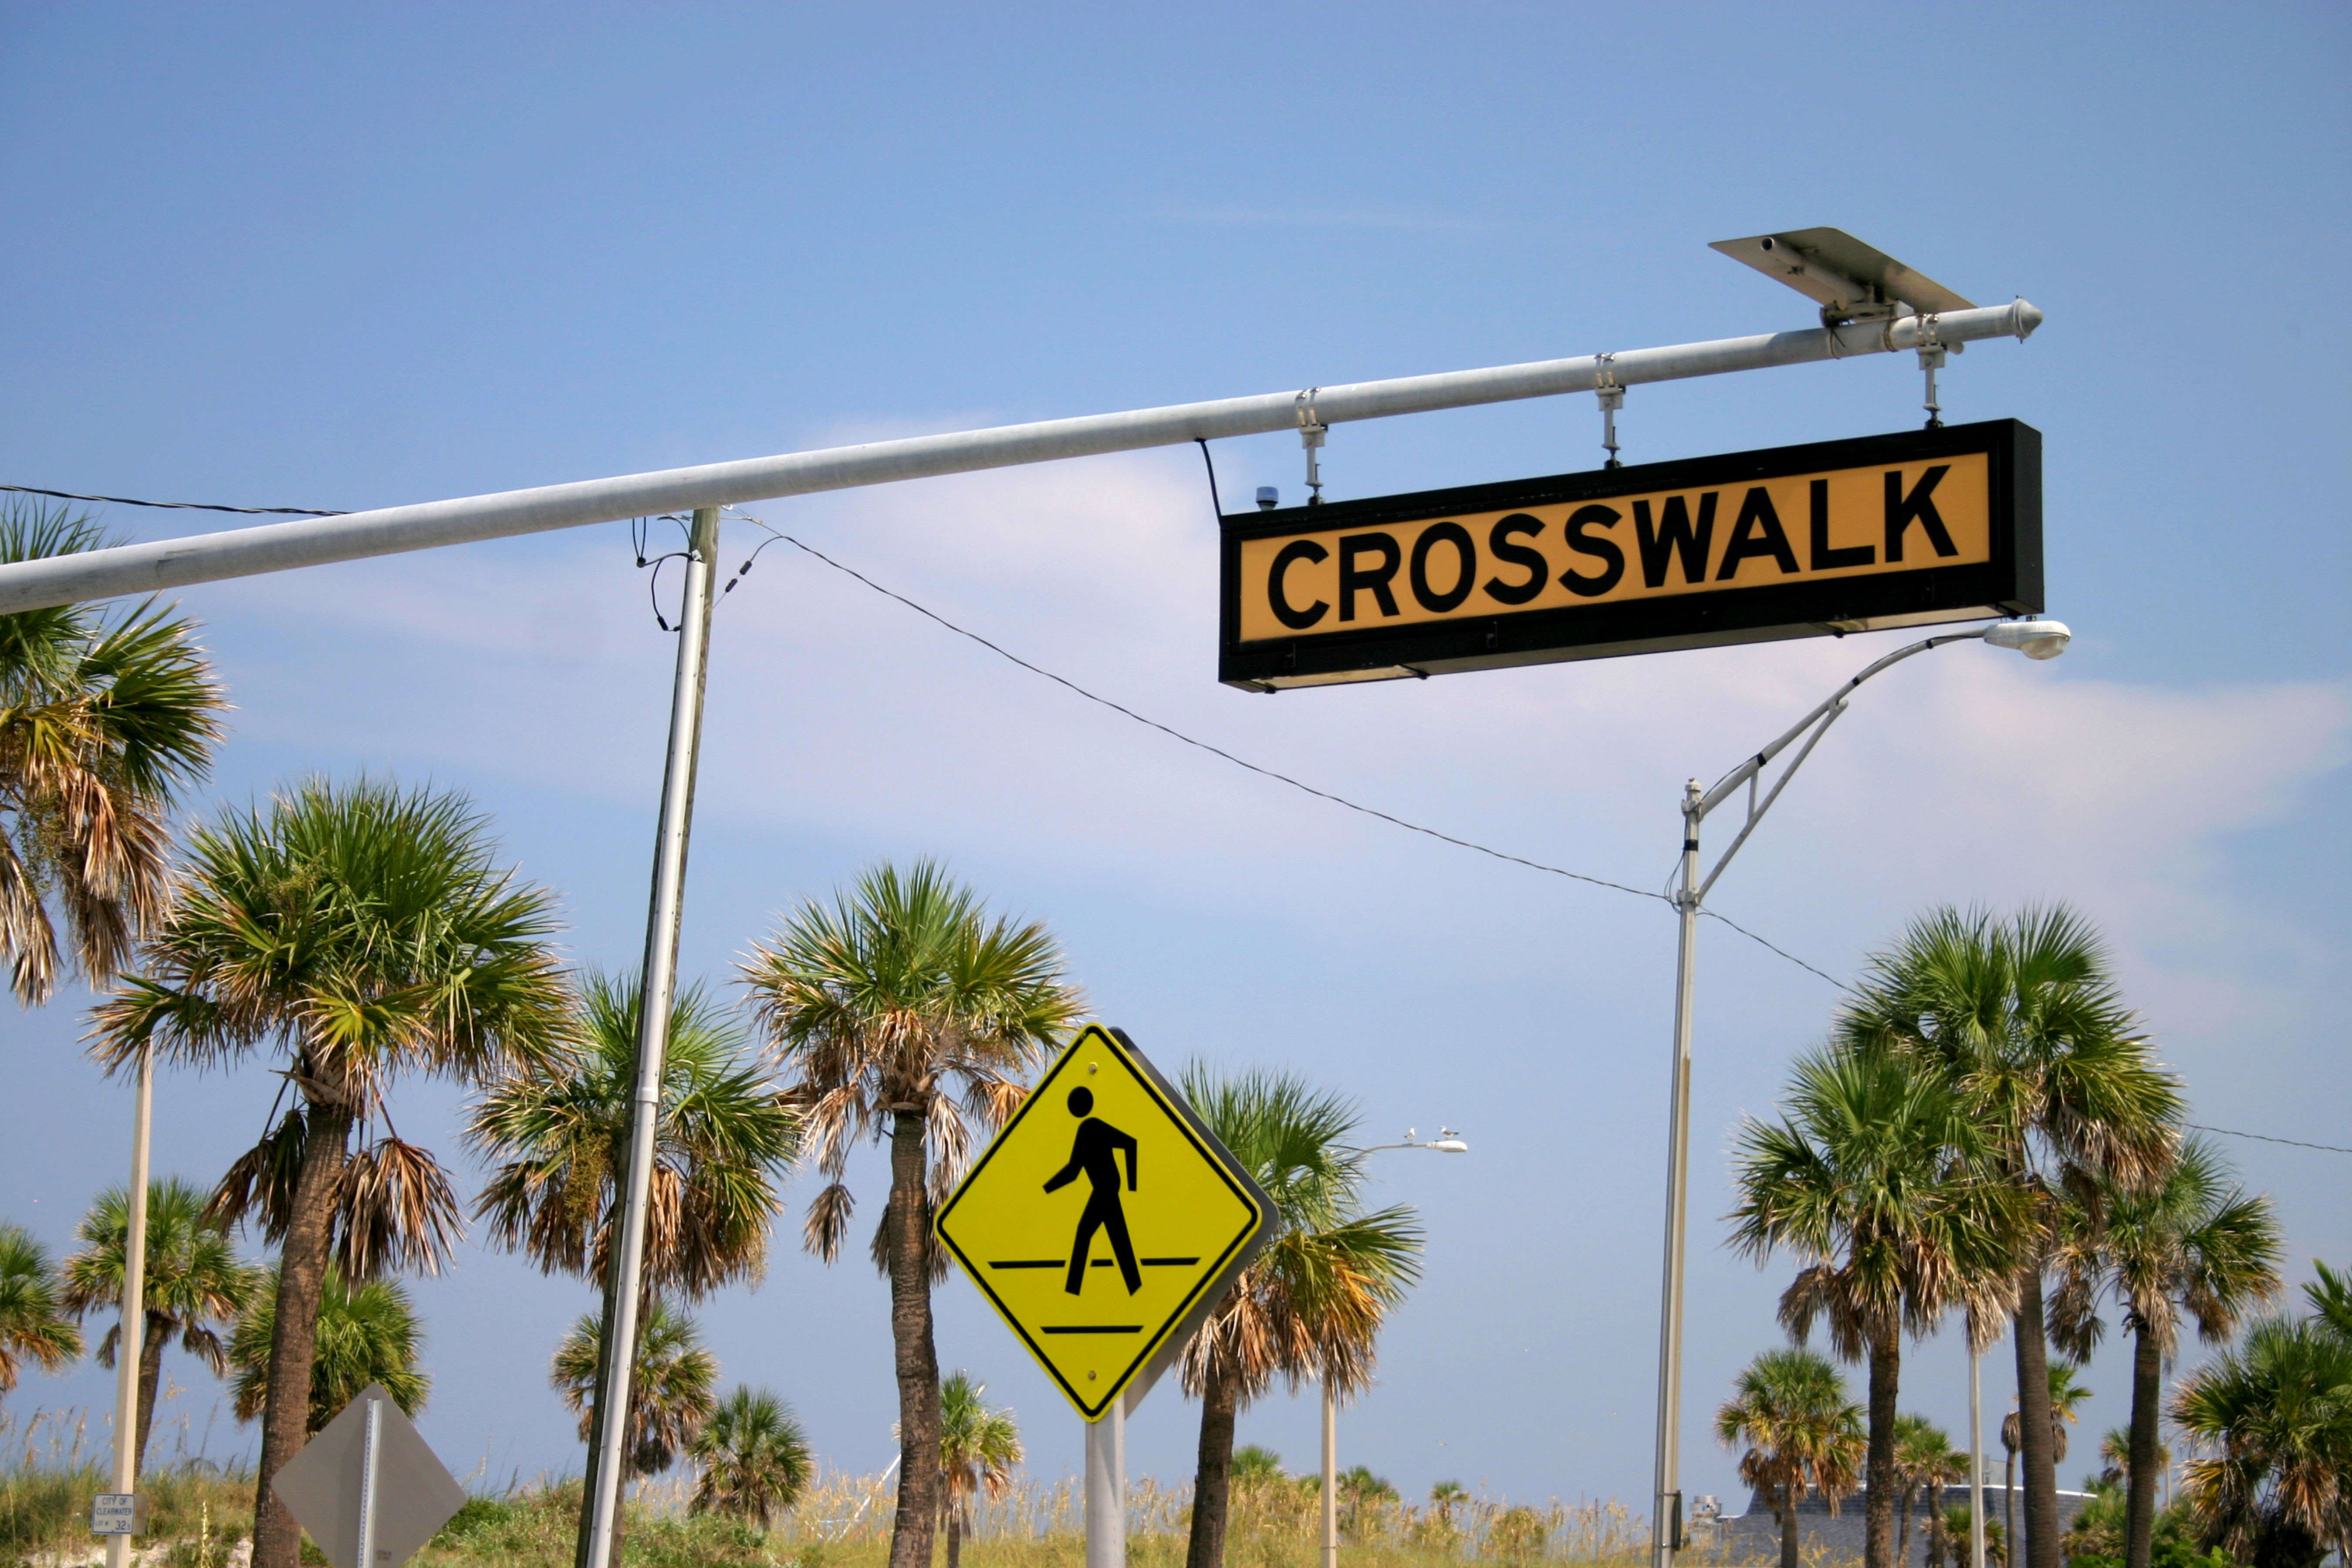 Orlando, the nation's deadliest city for pedestrians, has a plan for safer streets